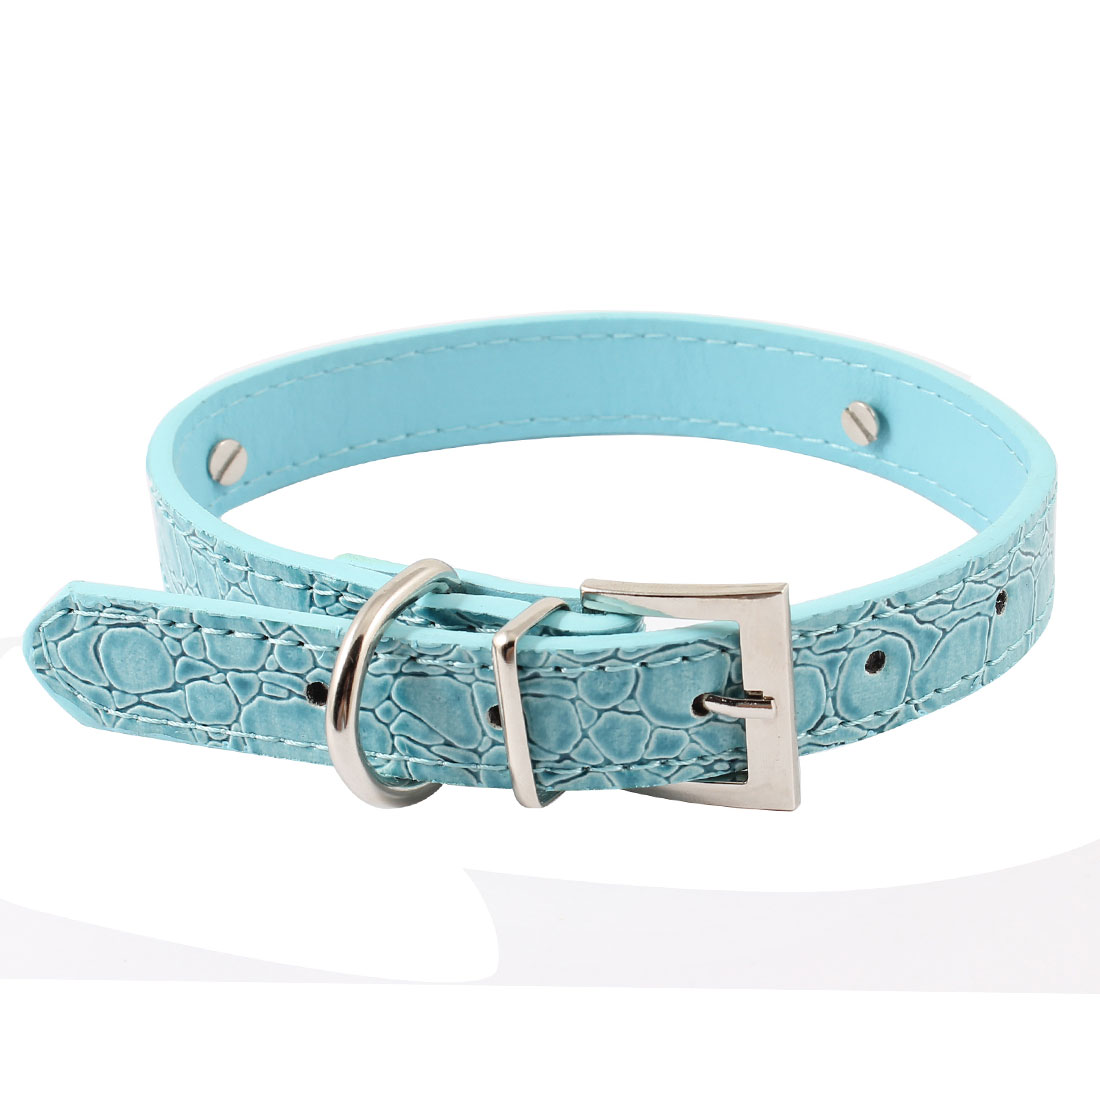 Blue Alligator Printed Adjustable Belt Faux Leather Pet Yorkie Dog Collar M